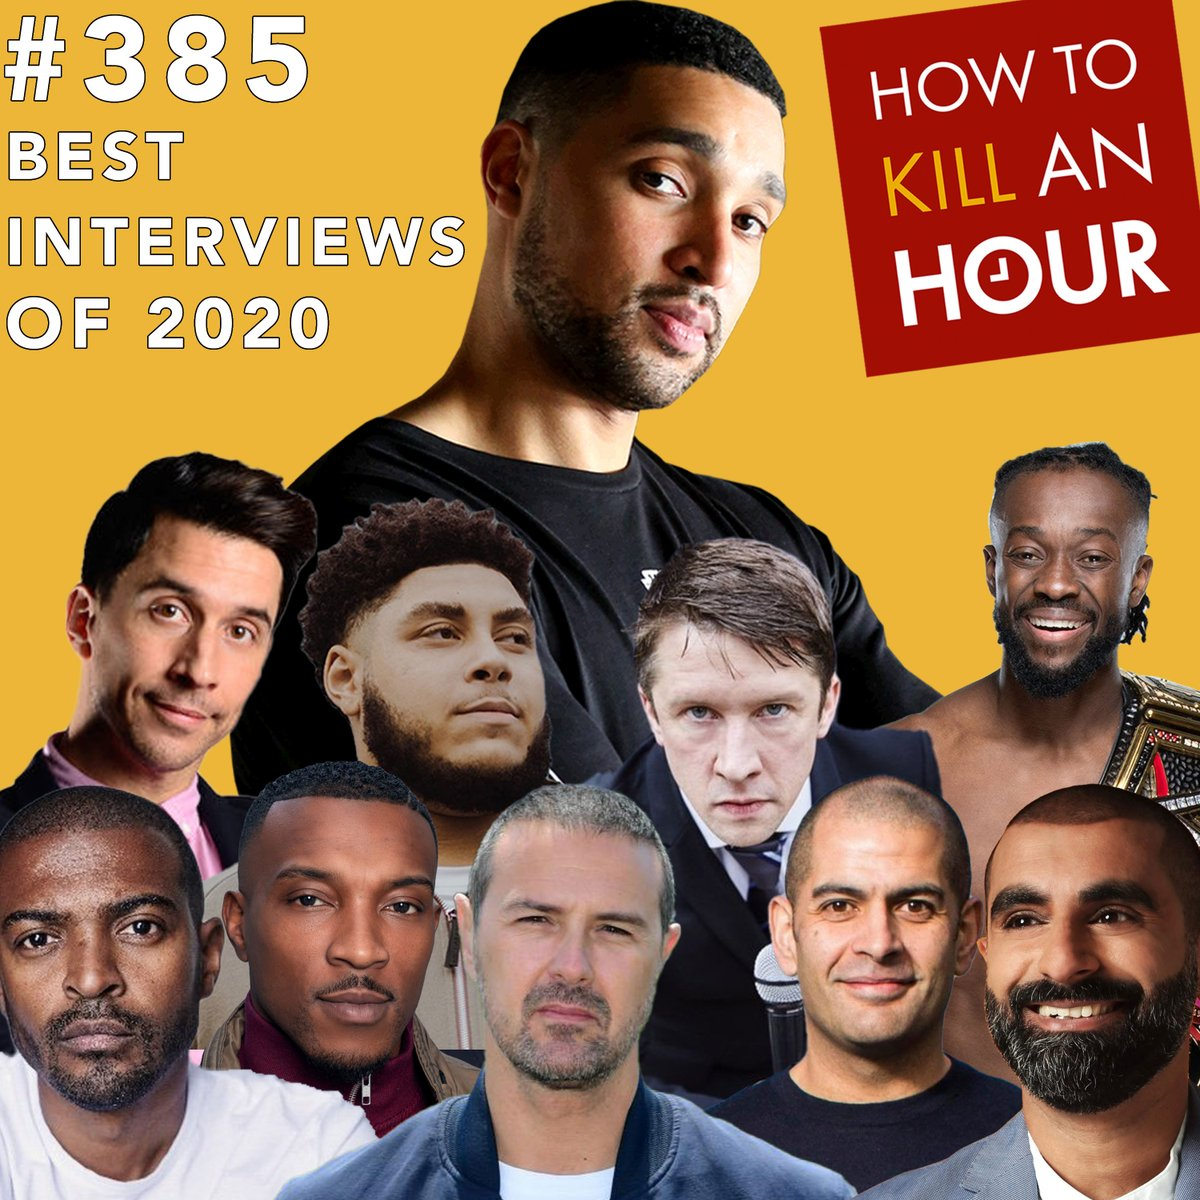 BEST OF of 2020 - @russell_kane chatts comedy during COVID, @PaddyMcGuinness & @harrismonkey discuss fearless @flintoff11 during @BBC_TopGear & the UNFORGETTABLE moment of @NoelClarke & @AshleyWalters82 picking on @NickBrightDJ 😂 Listen here: